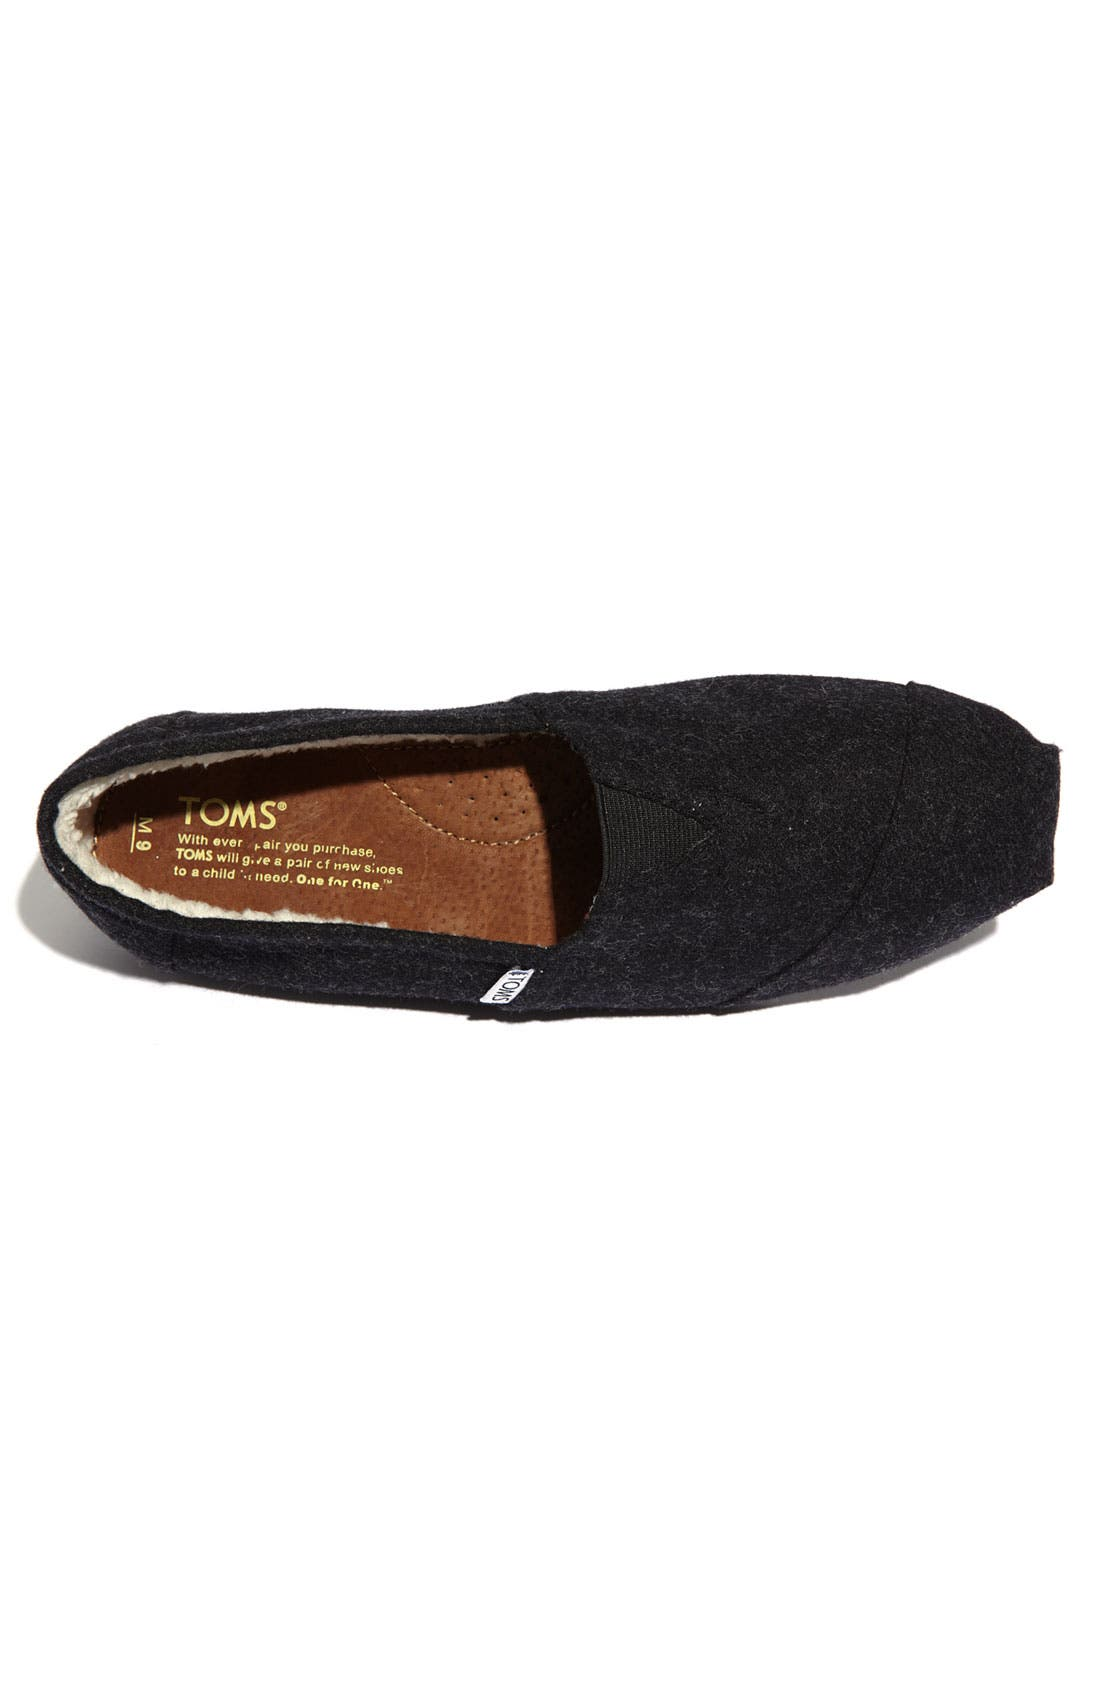 Alternate Image 3  - TOMS 'Classic' Woolen Slip-On (Men)